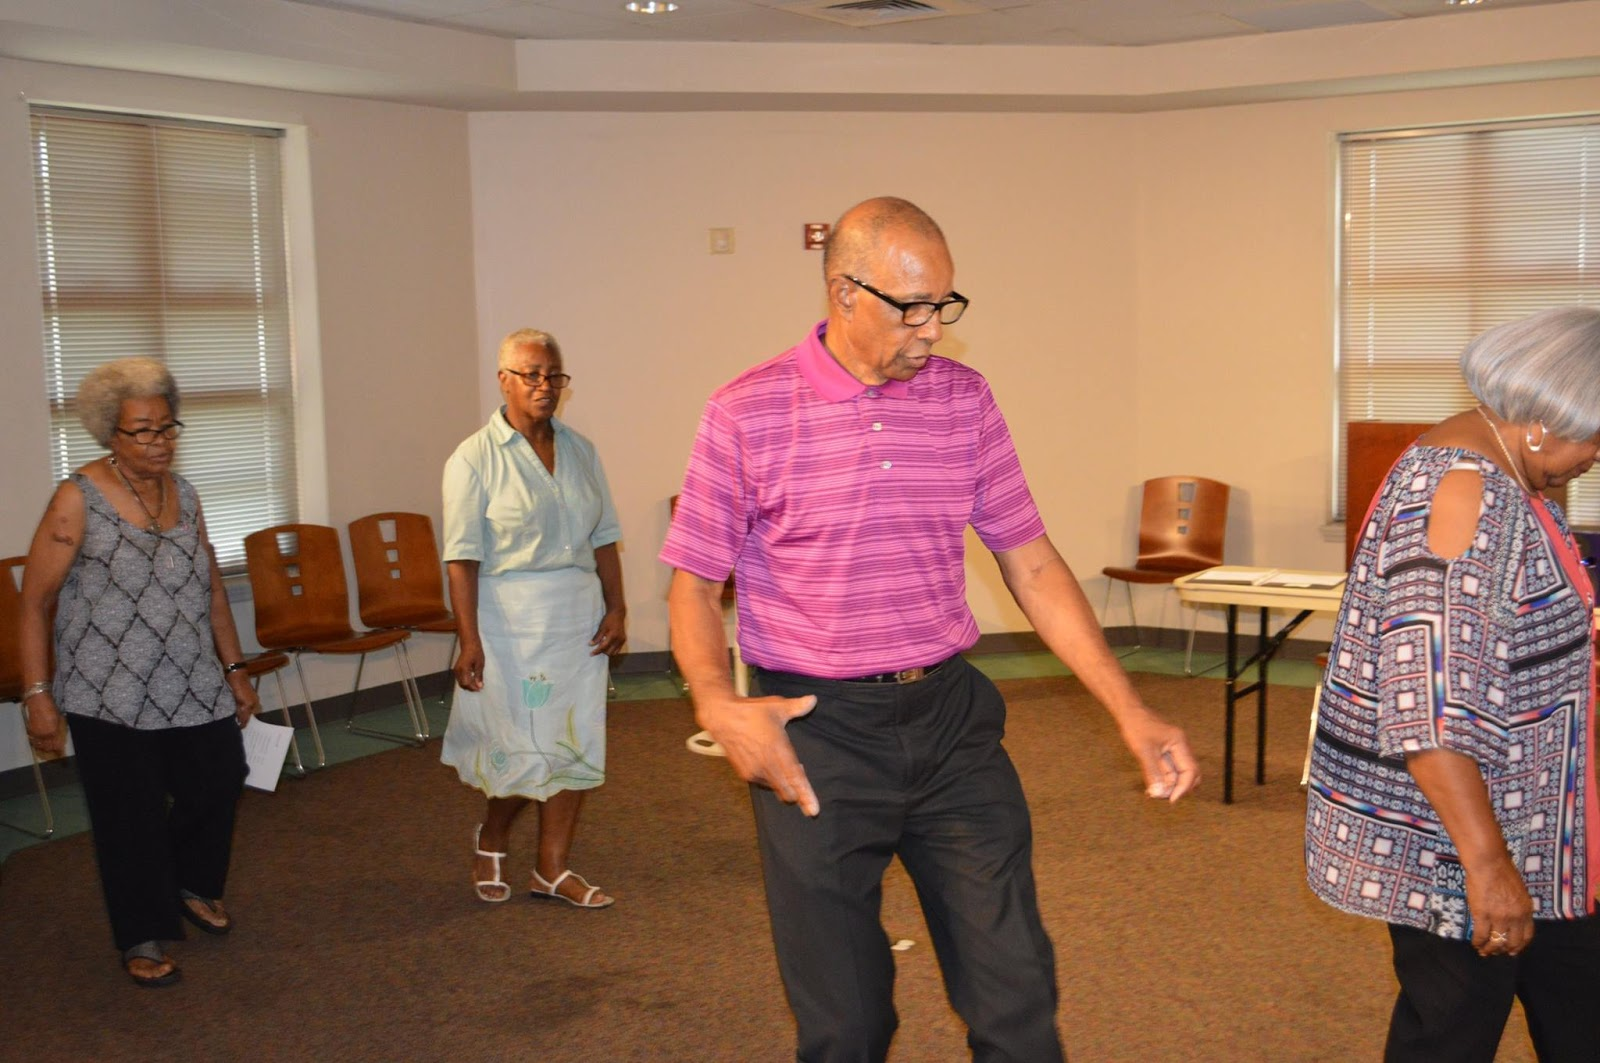 Birmingham Public Library West End And Powderly Branch Libraries Andrew Smith Bermuda Shorts Cokelat 33 Offering Free Adult Line Dance Classes